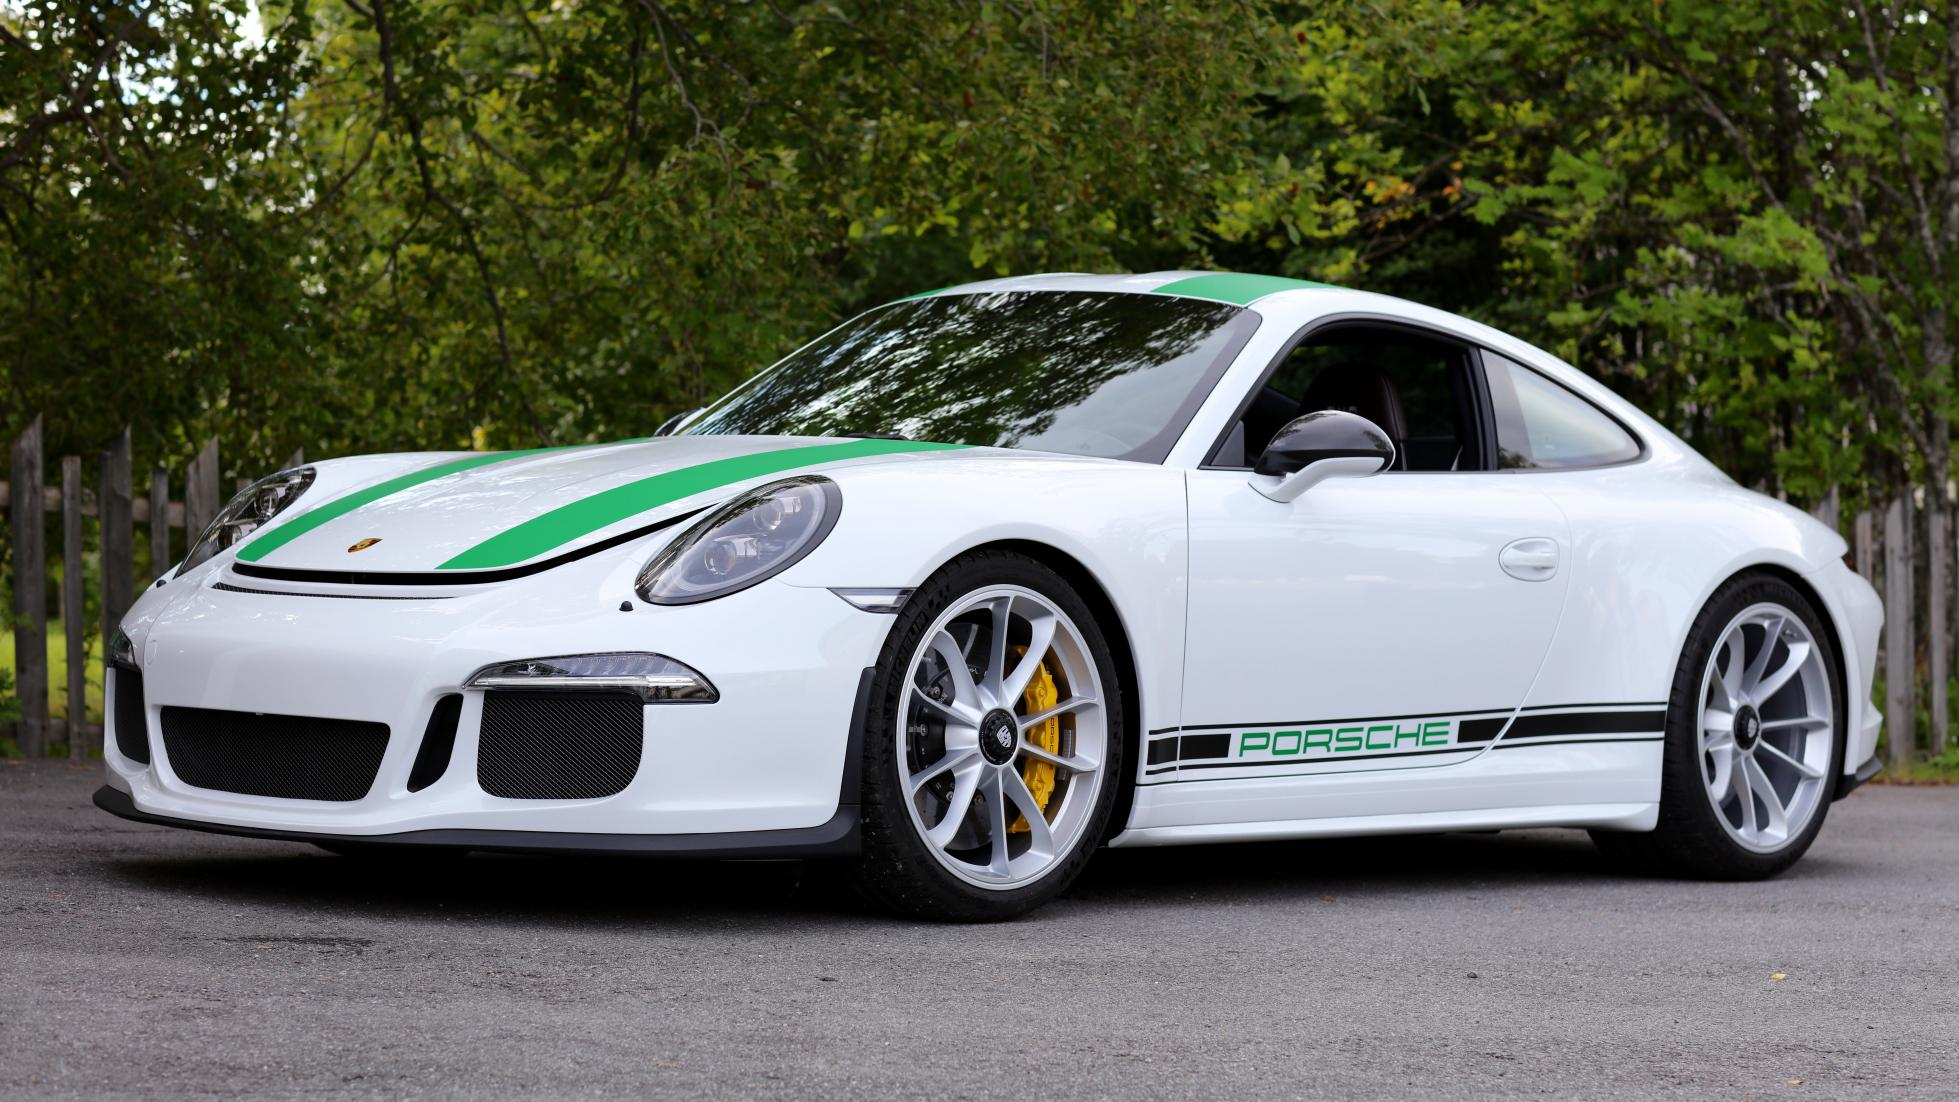 911R For Sale >> EXOTIC: Porsche 911R For Sale already - Cars247